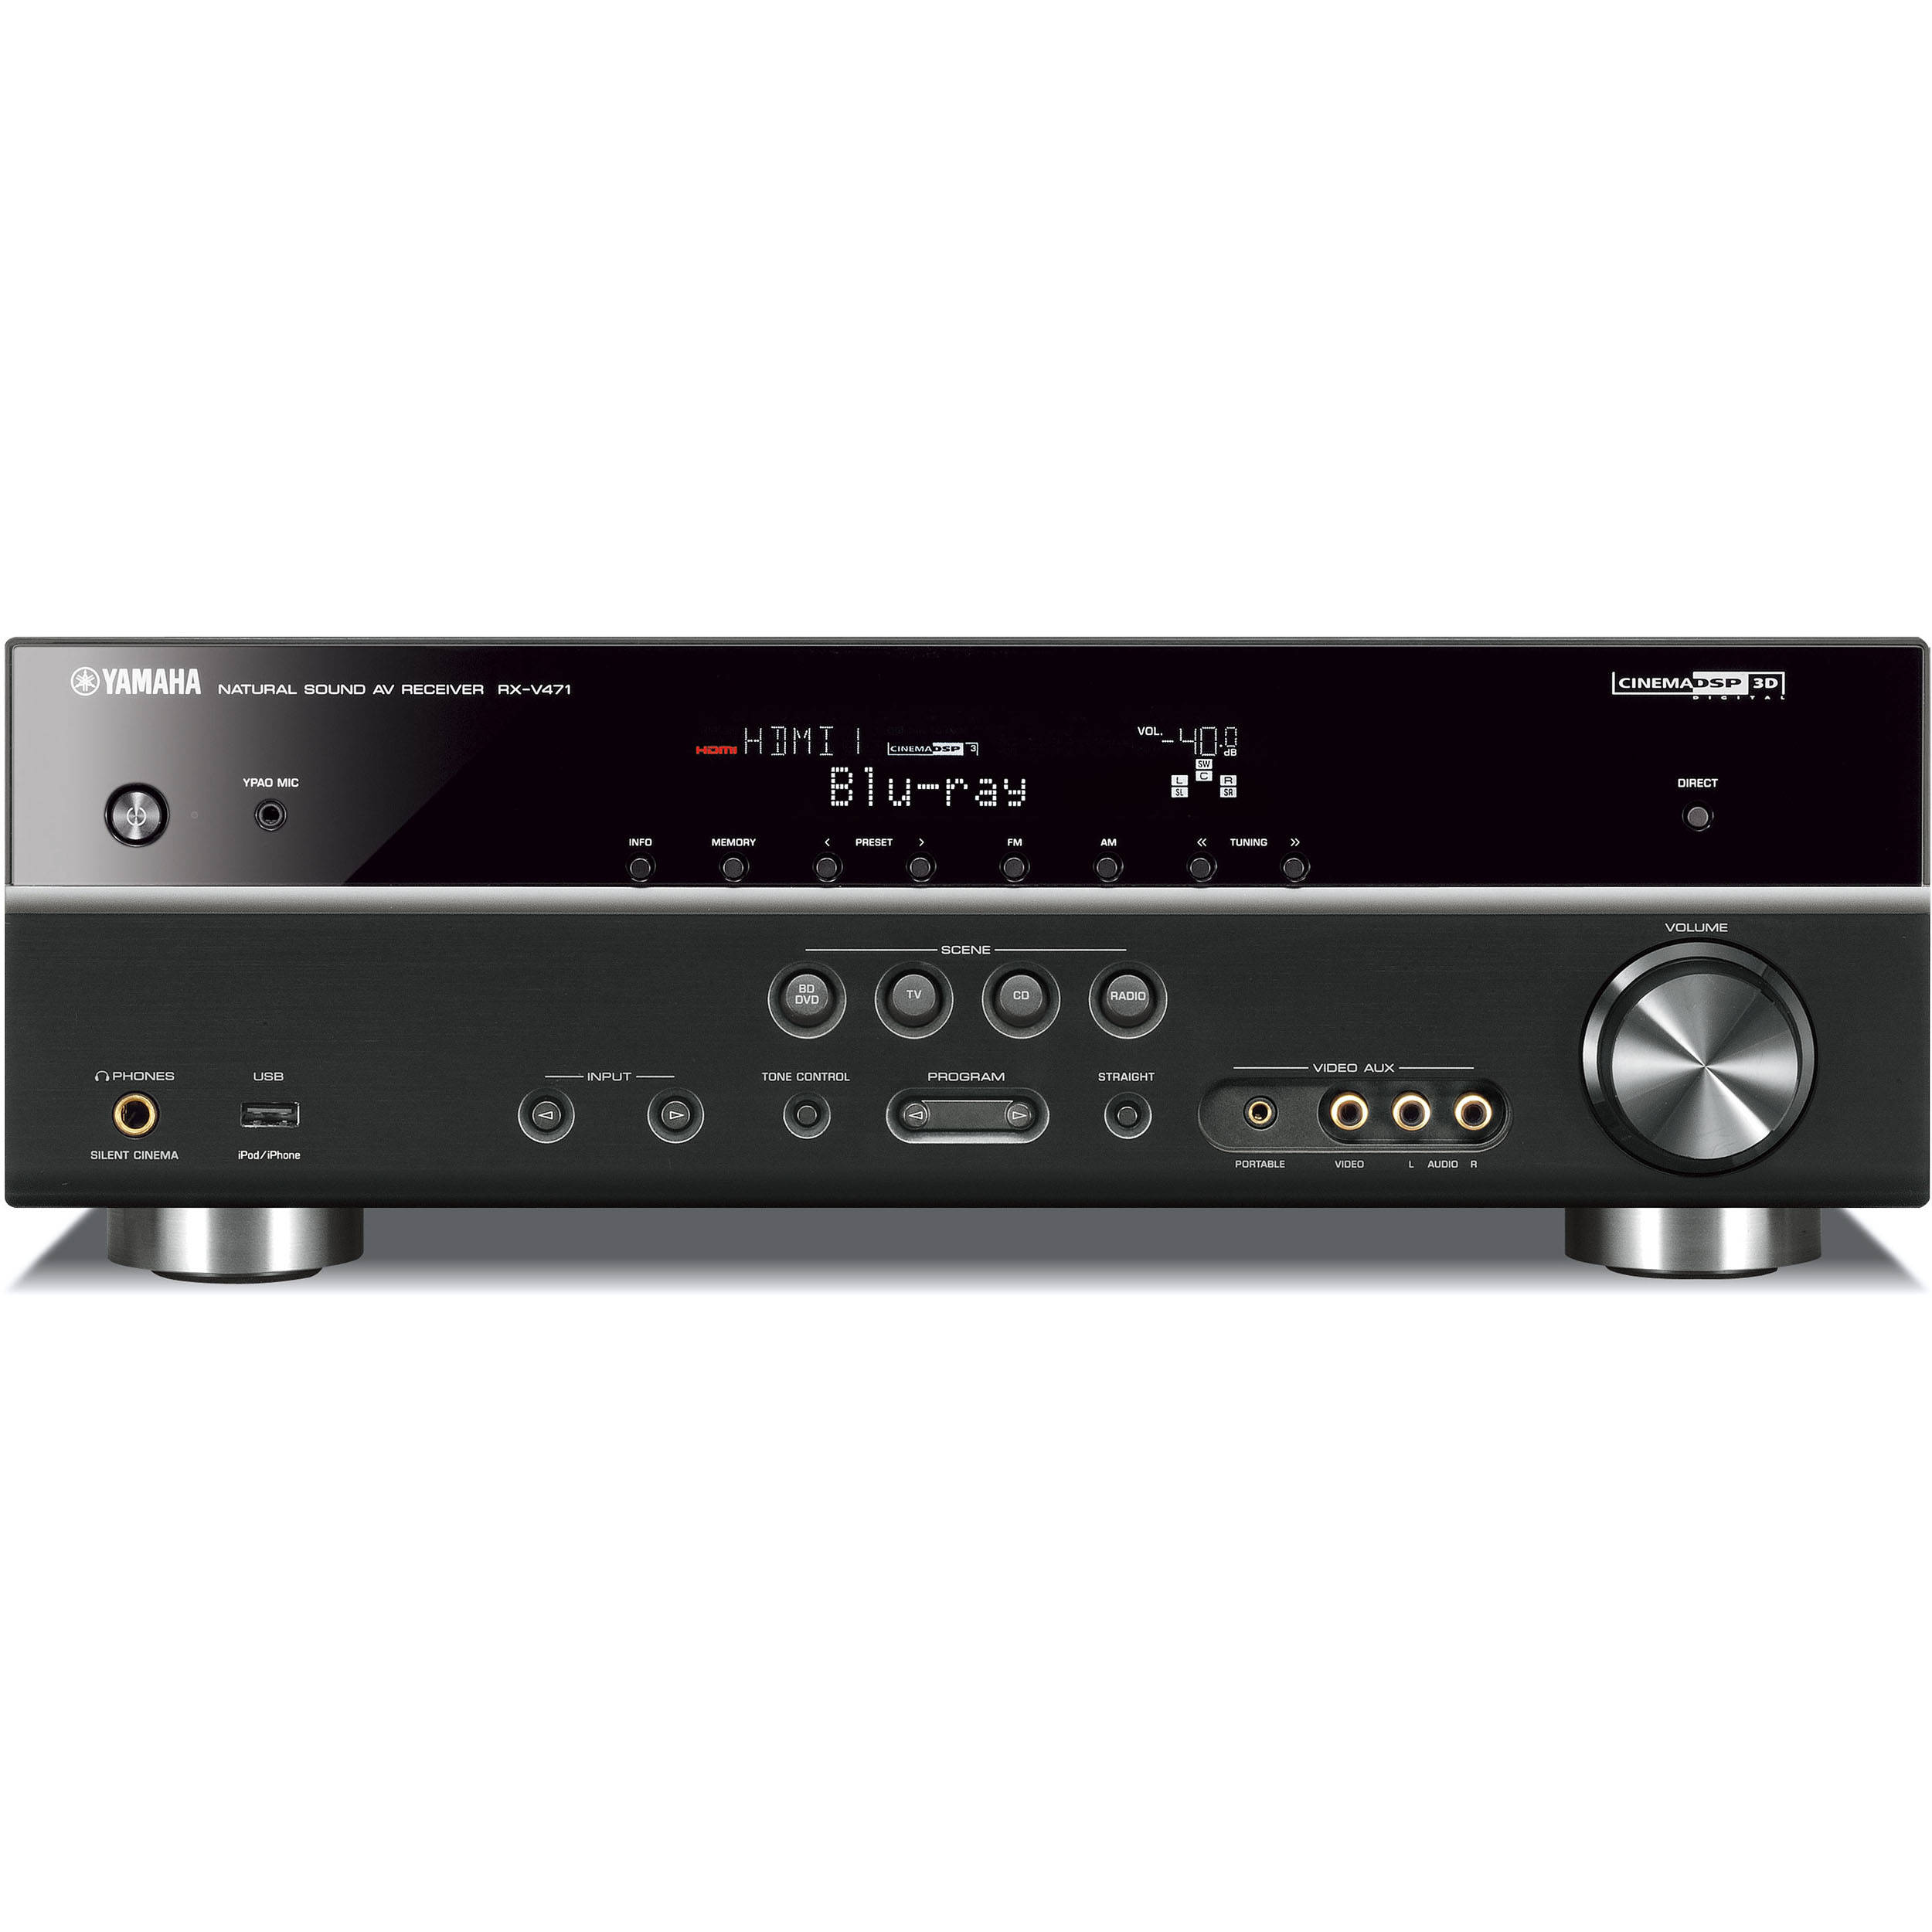 yamaha 5.1 receiver reviews